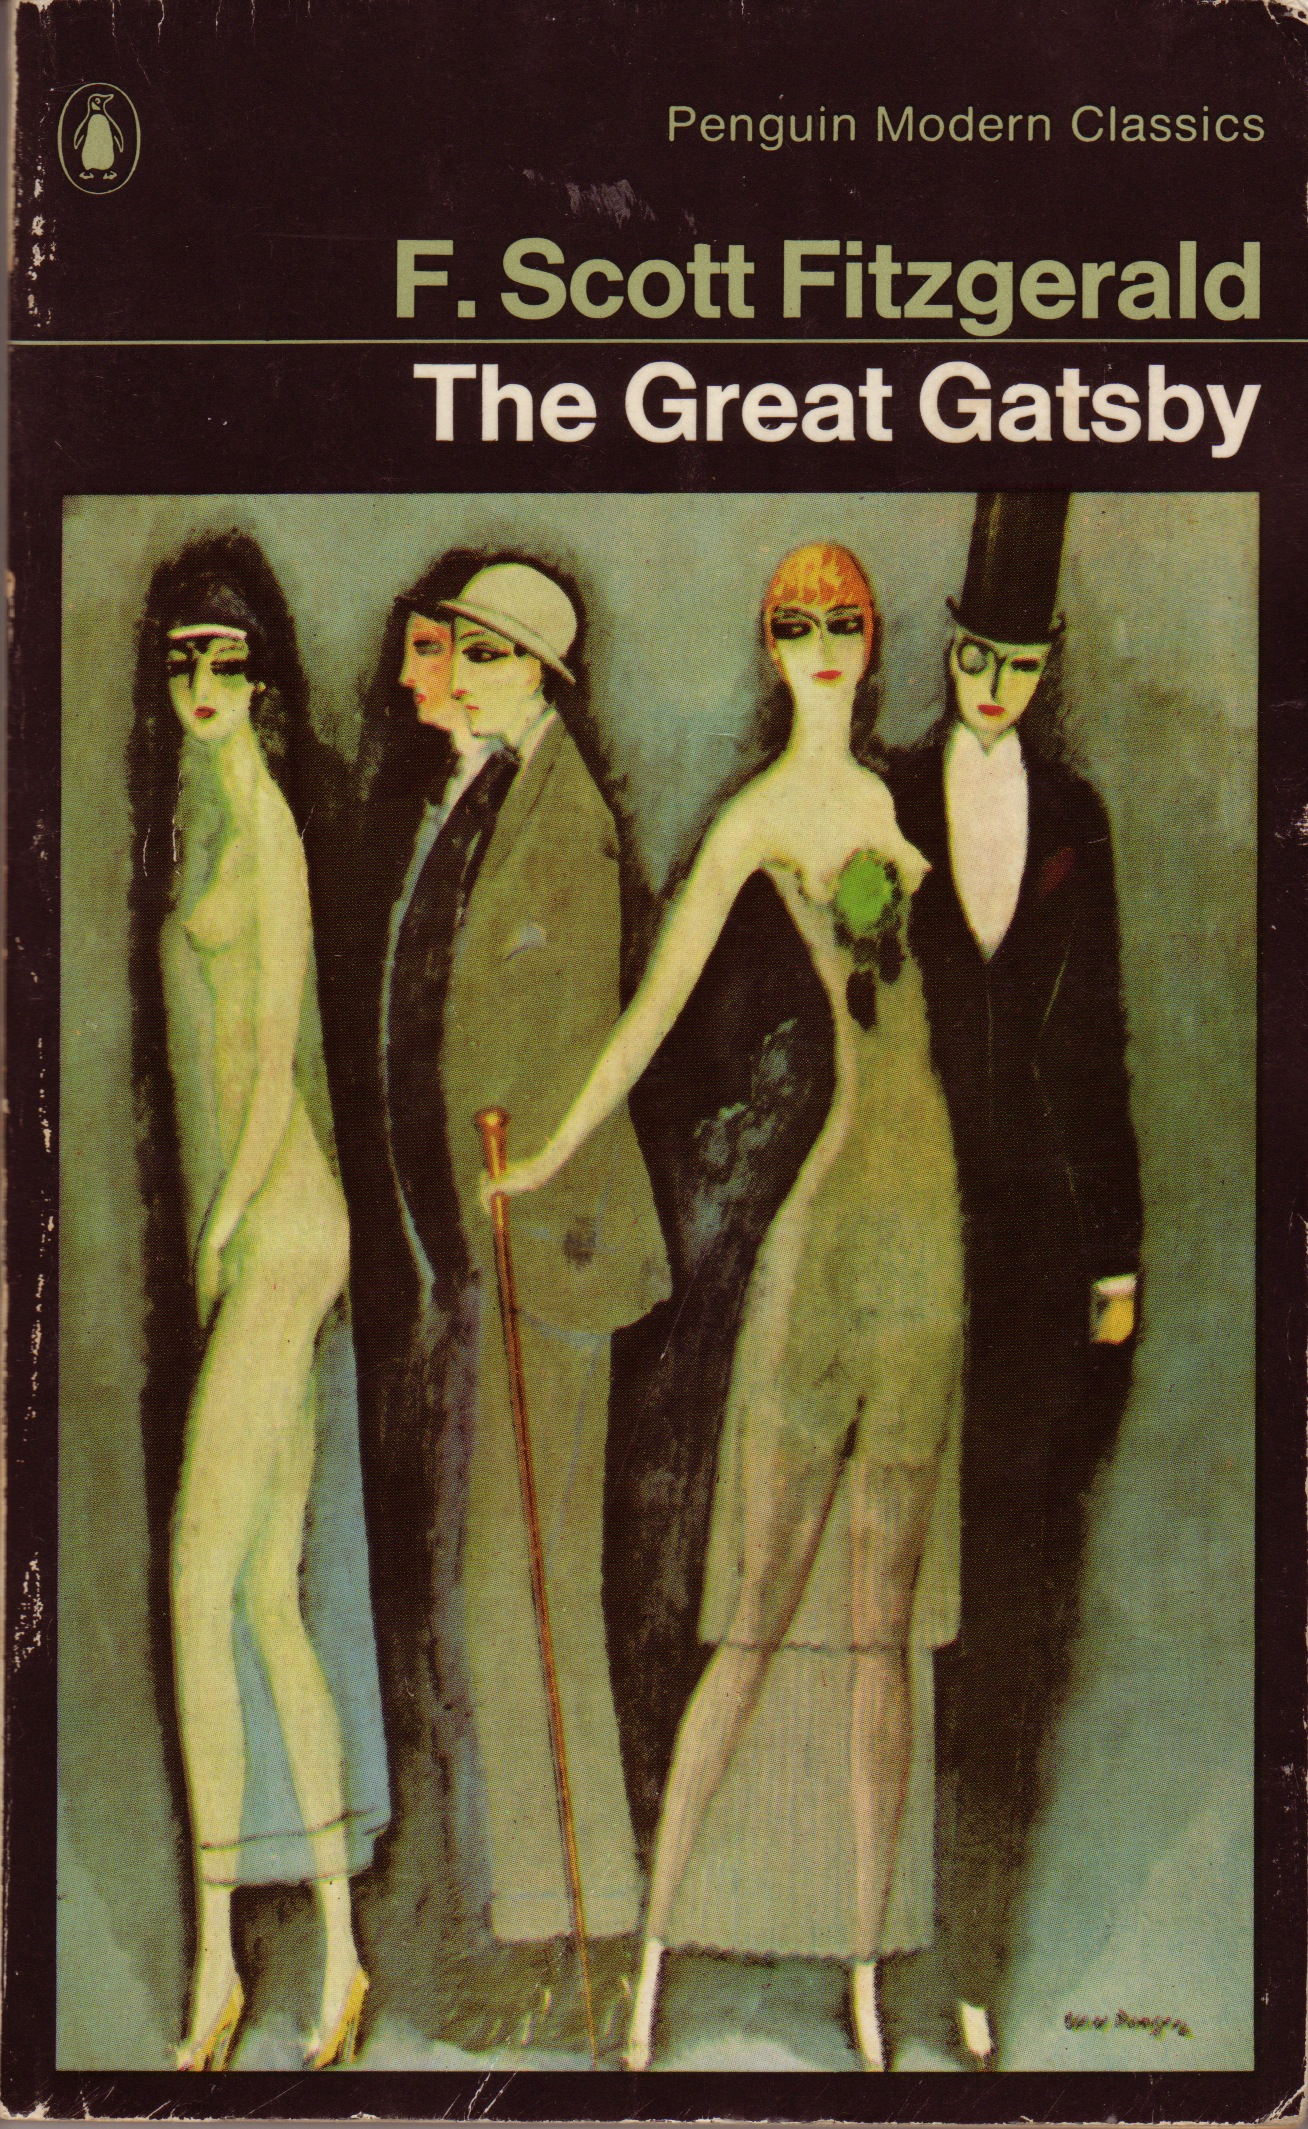 cultural impact of the great gatsby Full-text paper (pdf): fitzgerald's the great gatsby between the film and the novel: a corpus-driven study of students' responses.